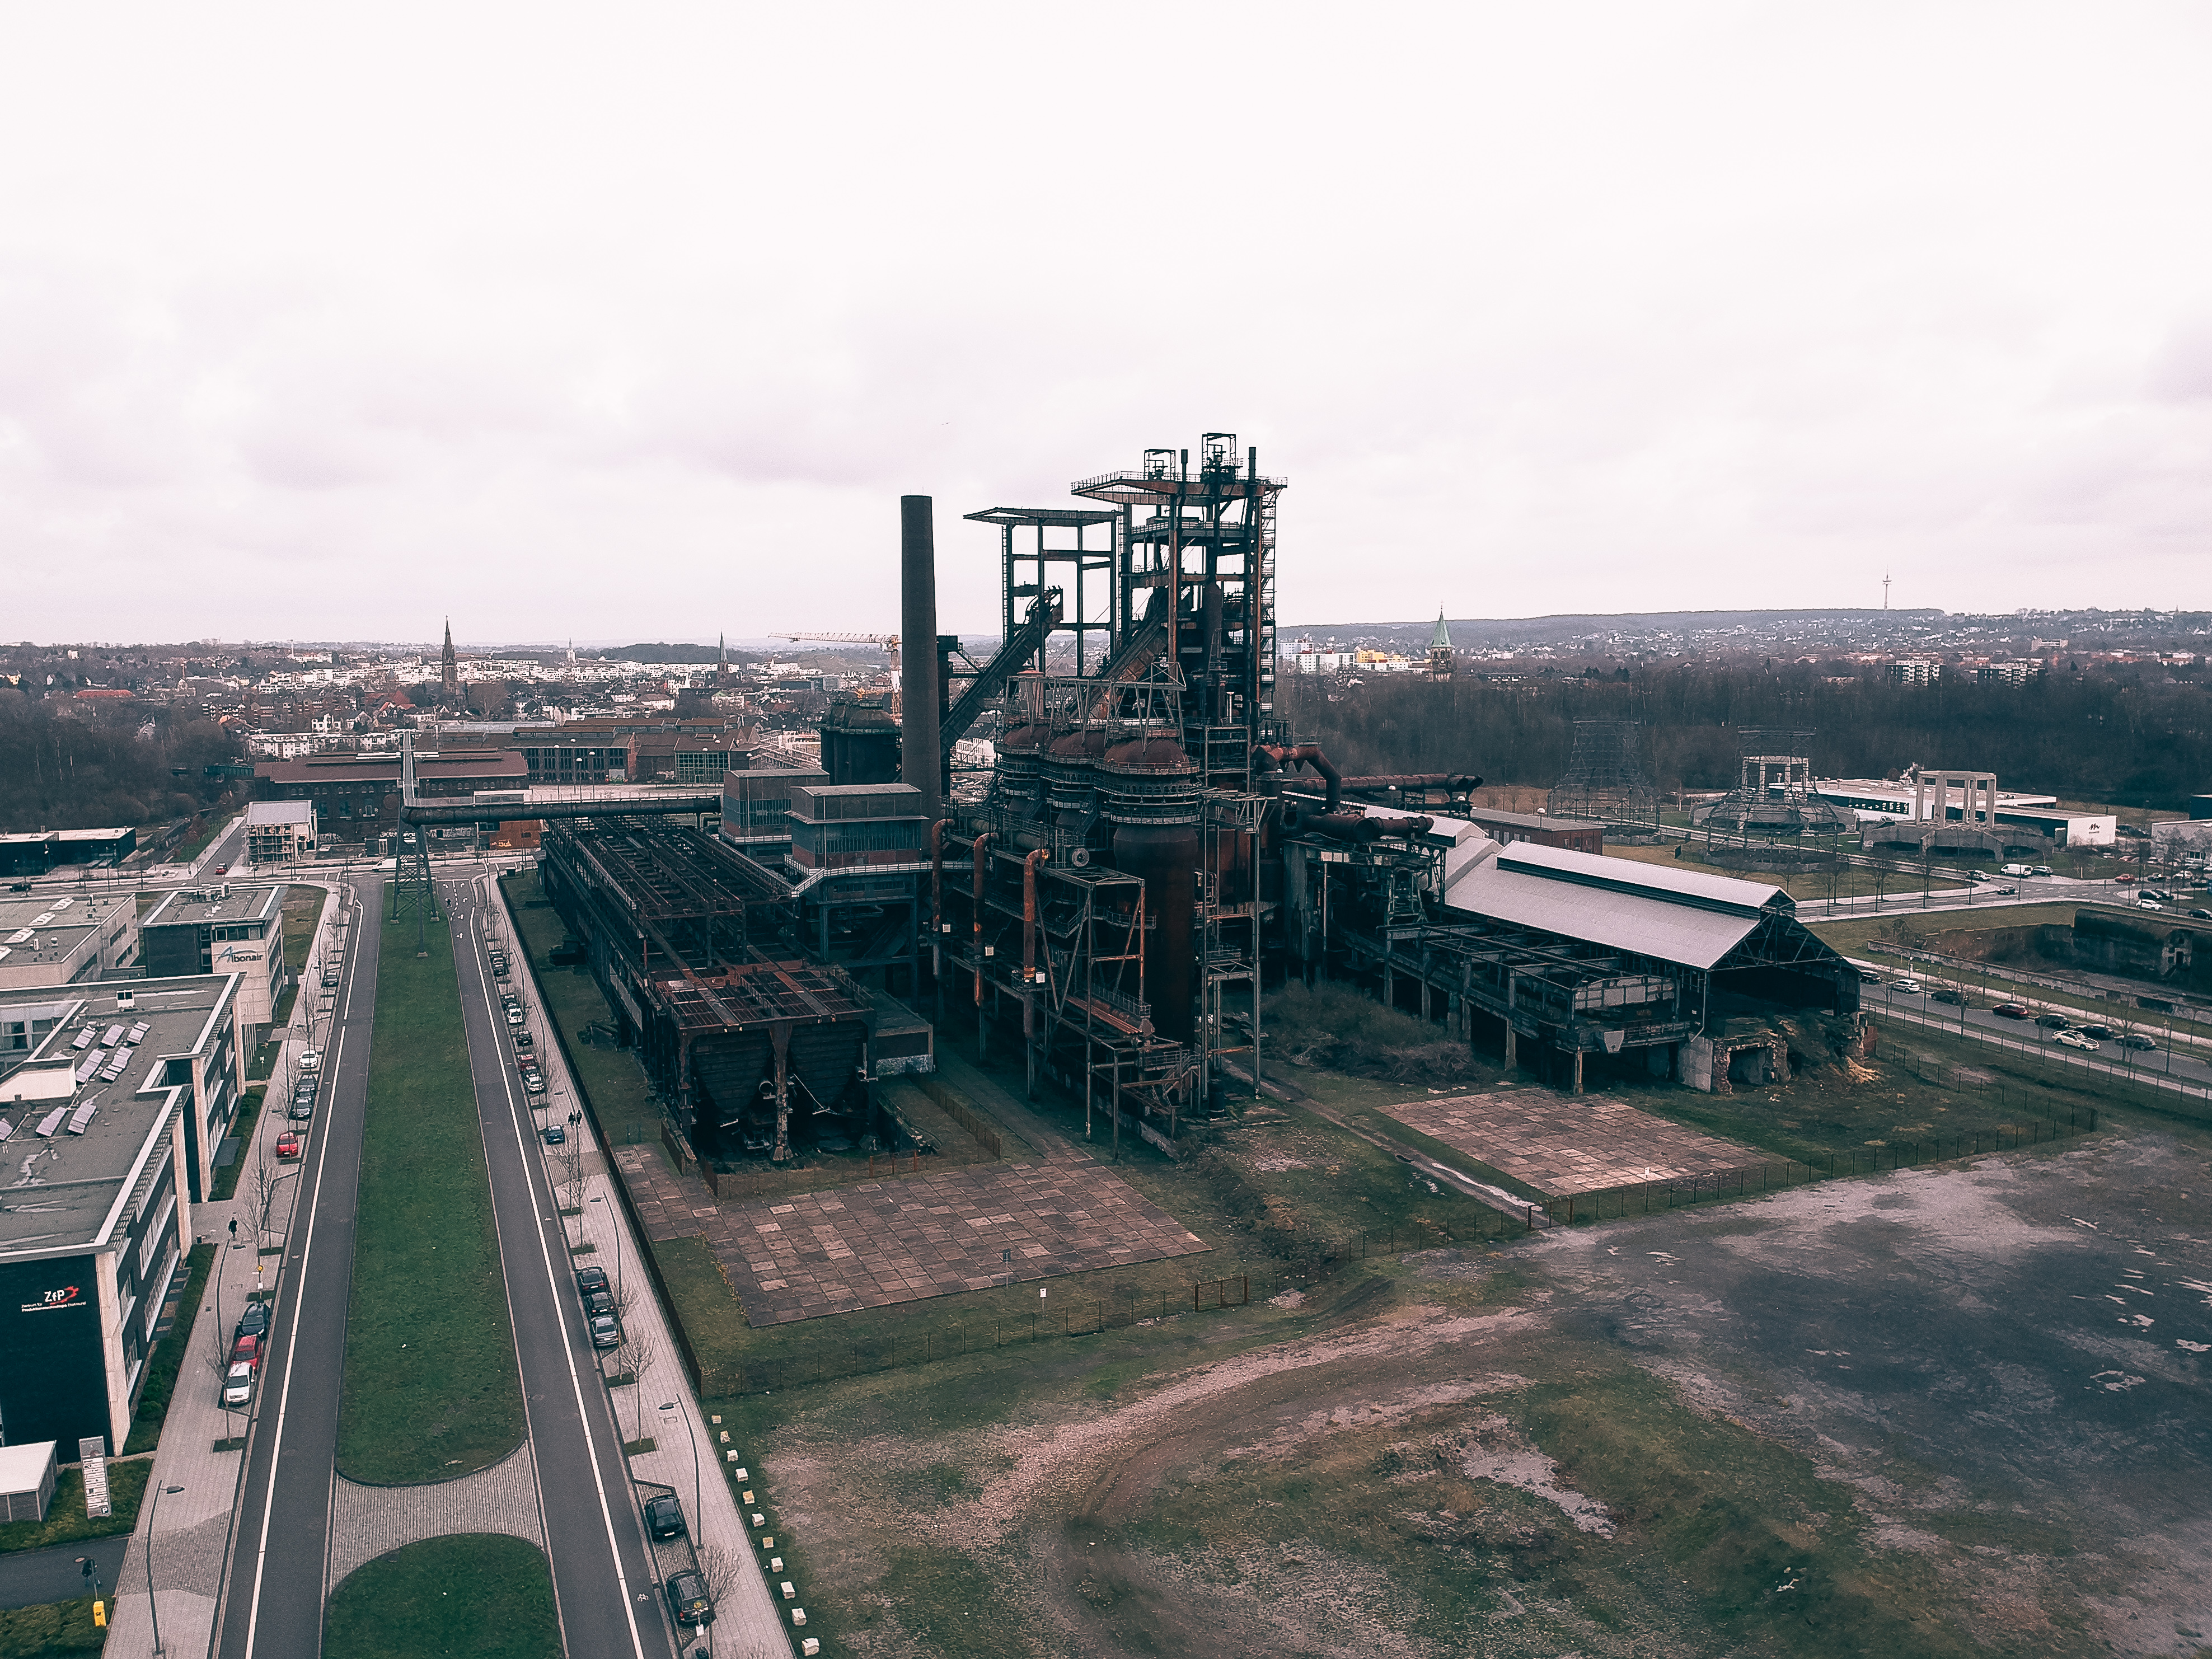 Panorama of the furnance PHOENIX West.